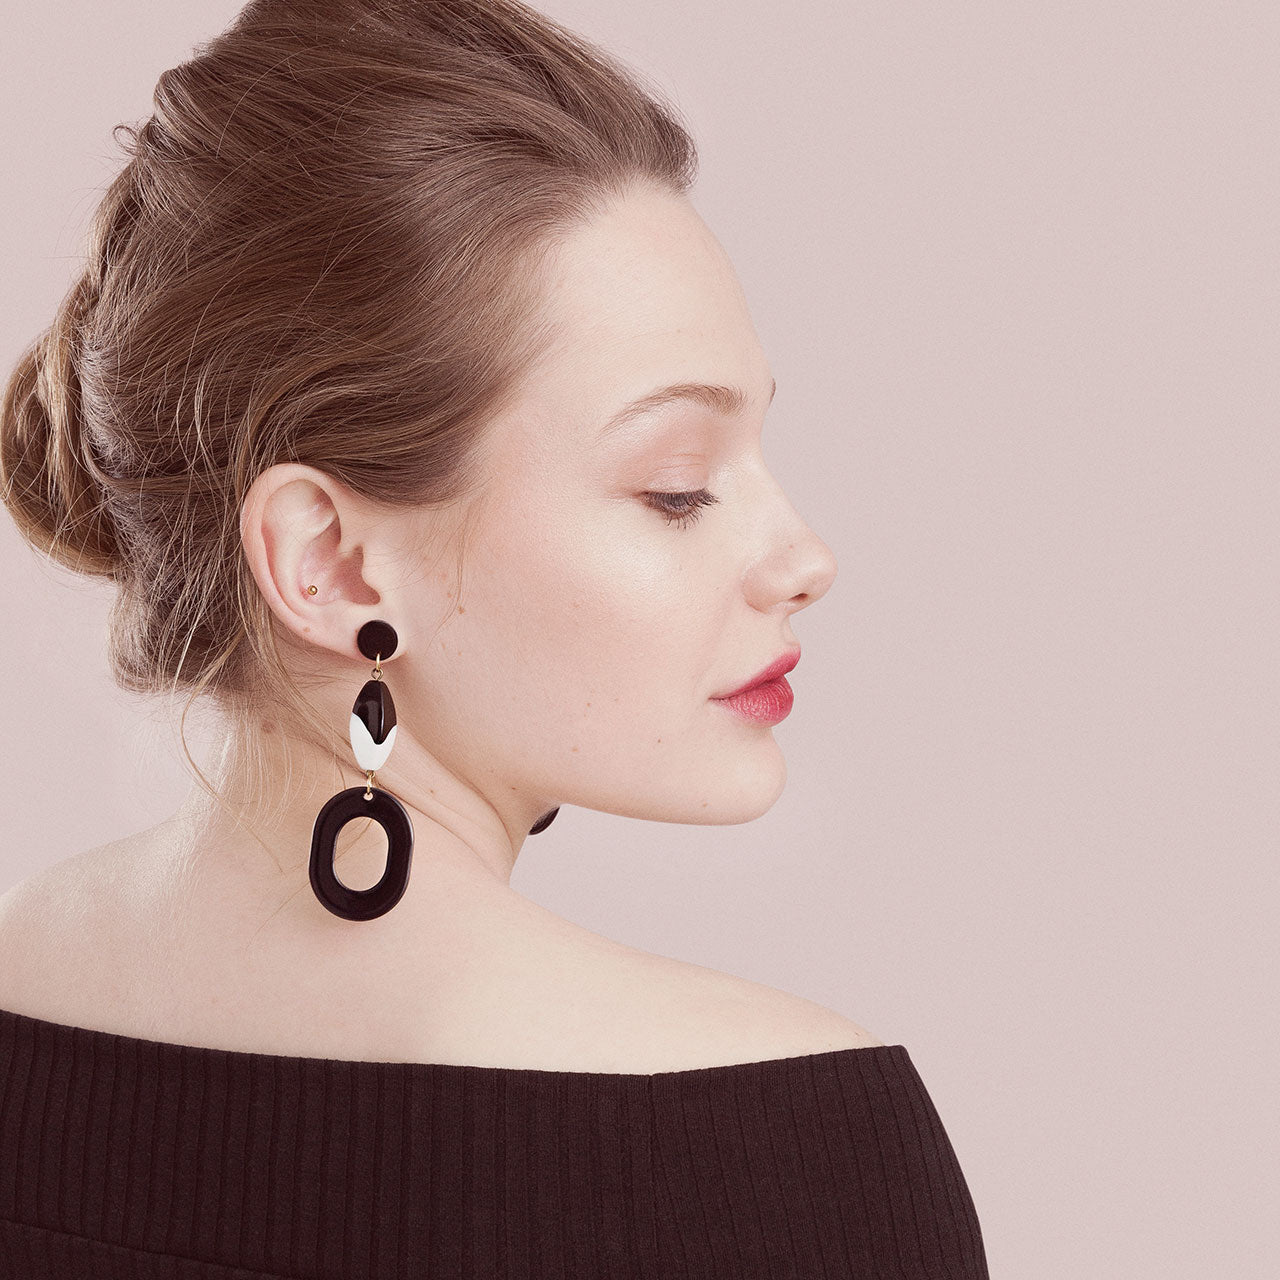 Piston Earrings in black and white (SD1349)